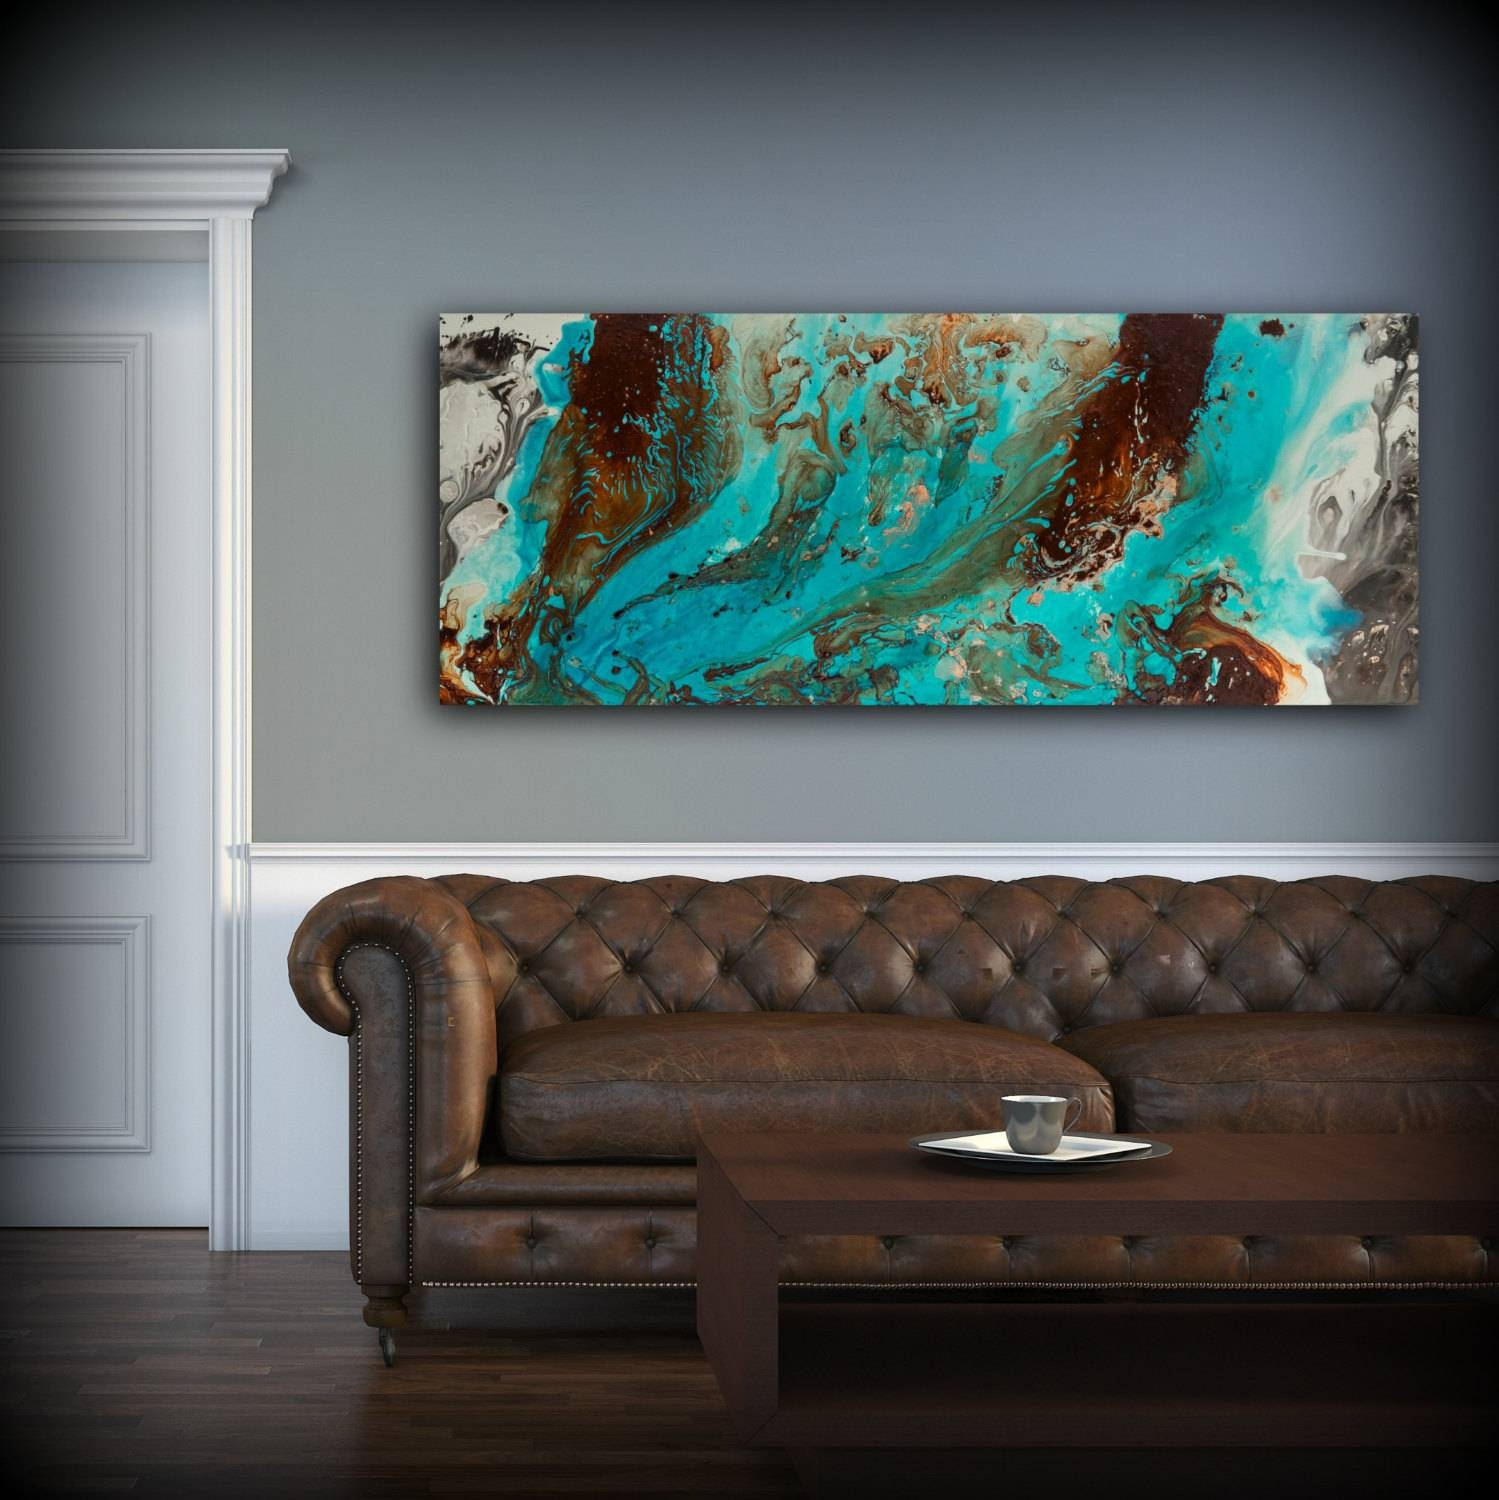 Aqua Print, Blue And Brown Wall Art Decor, Colourful, Bohemian Art In Most Up To Date Turquoise And Brown Wall Art (View 1 of 25)